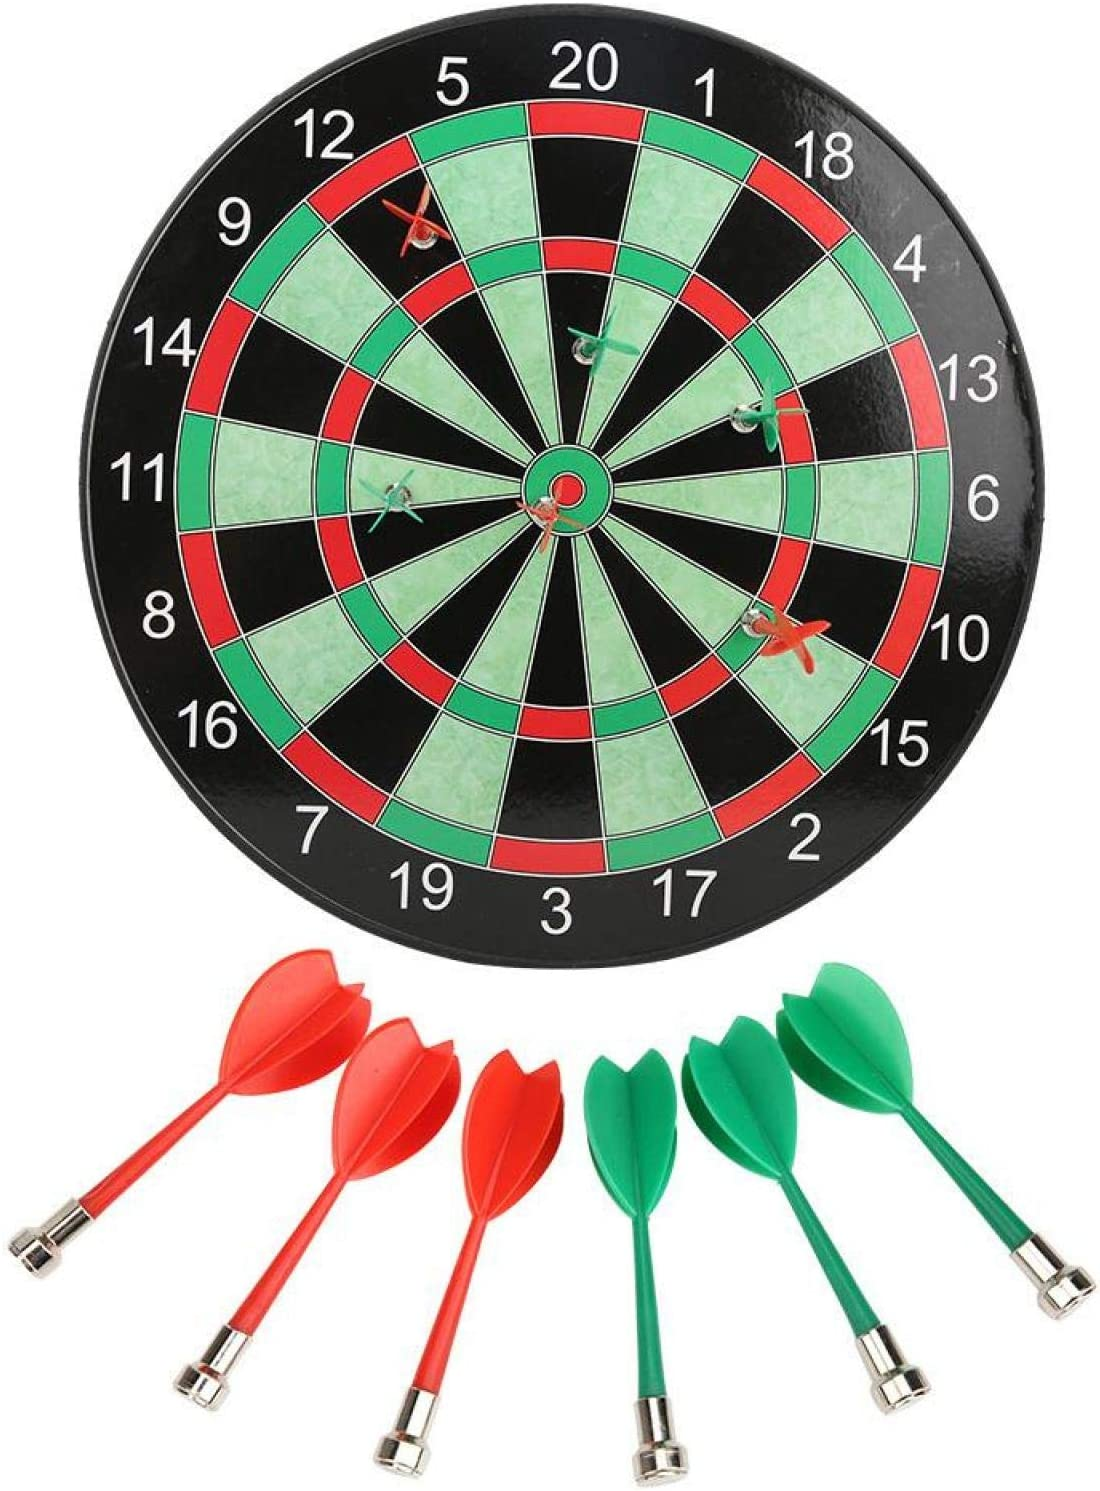 01 Board, 15in Dartboard Game Boys Toys Gifts for Office and Fam